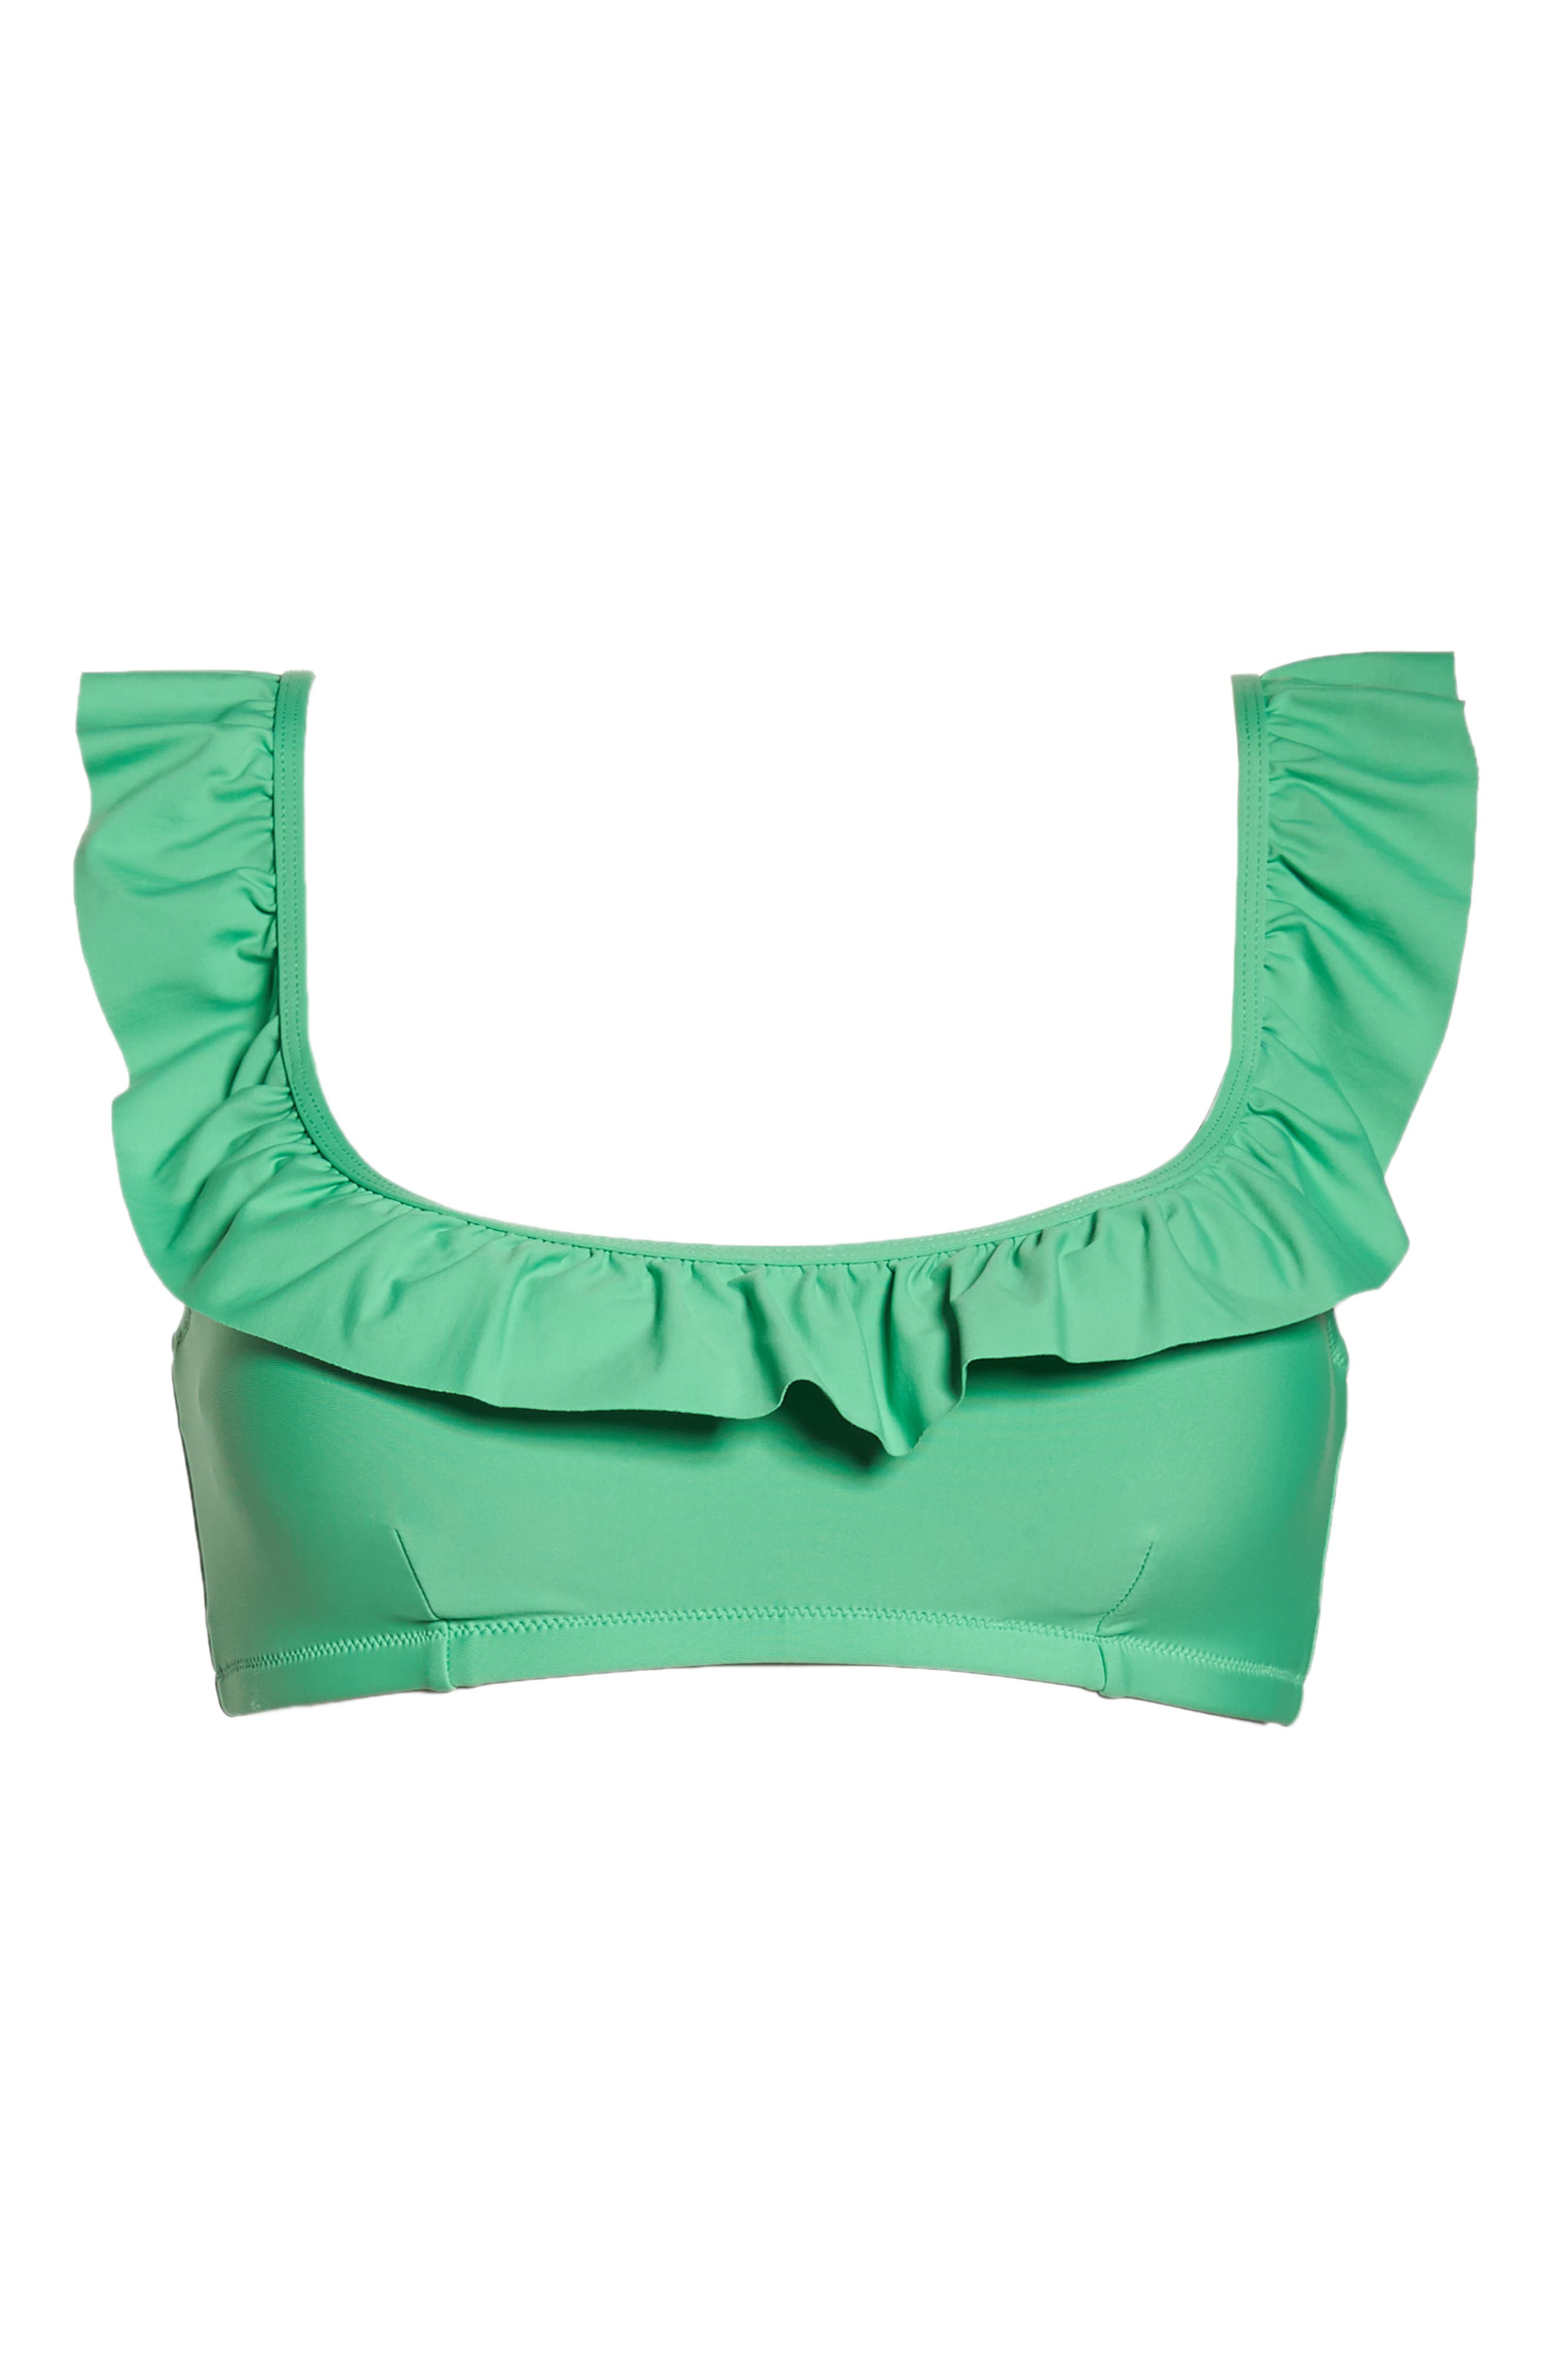 Ruffle Bikini Top,                             Alternate thumbnail 19, color,